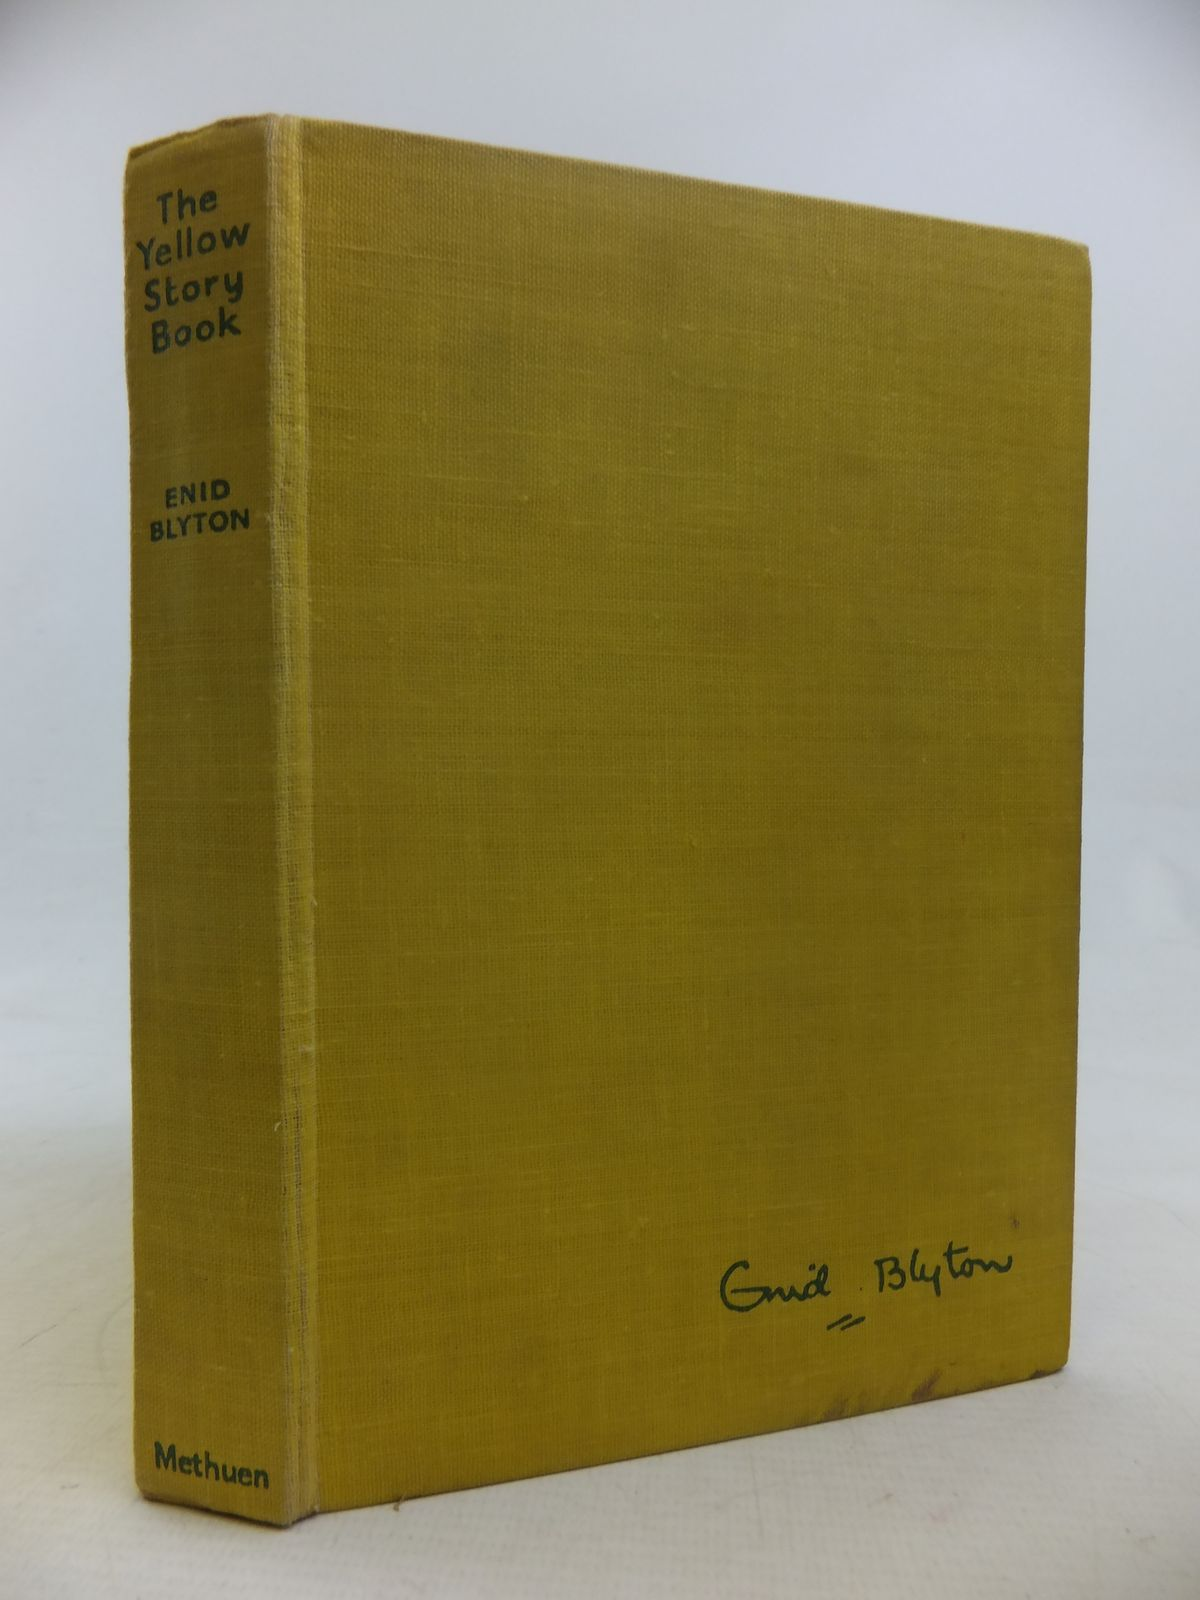 Photo of THE YELLOW STORY BOOK written by Blyton, Enid illustrated by Gell, Kathleen published by Methuen & Co. Ltd. (STOCK CODE: 2116885)  for sale by Stella & Rose's Books